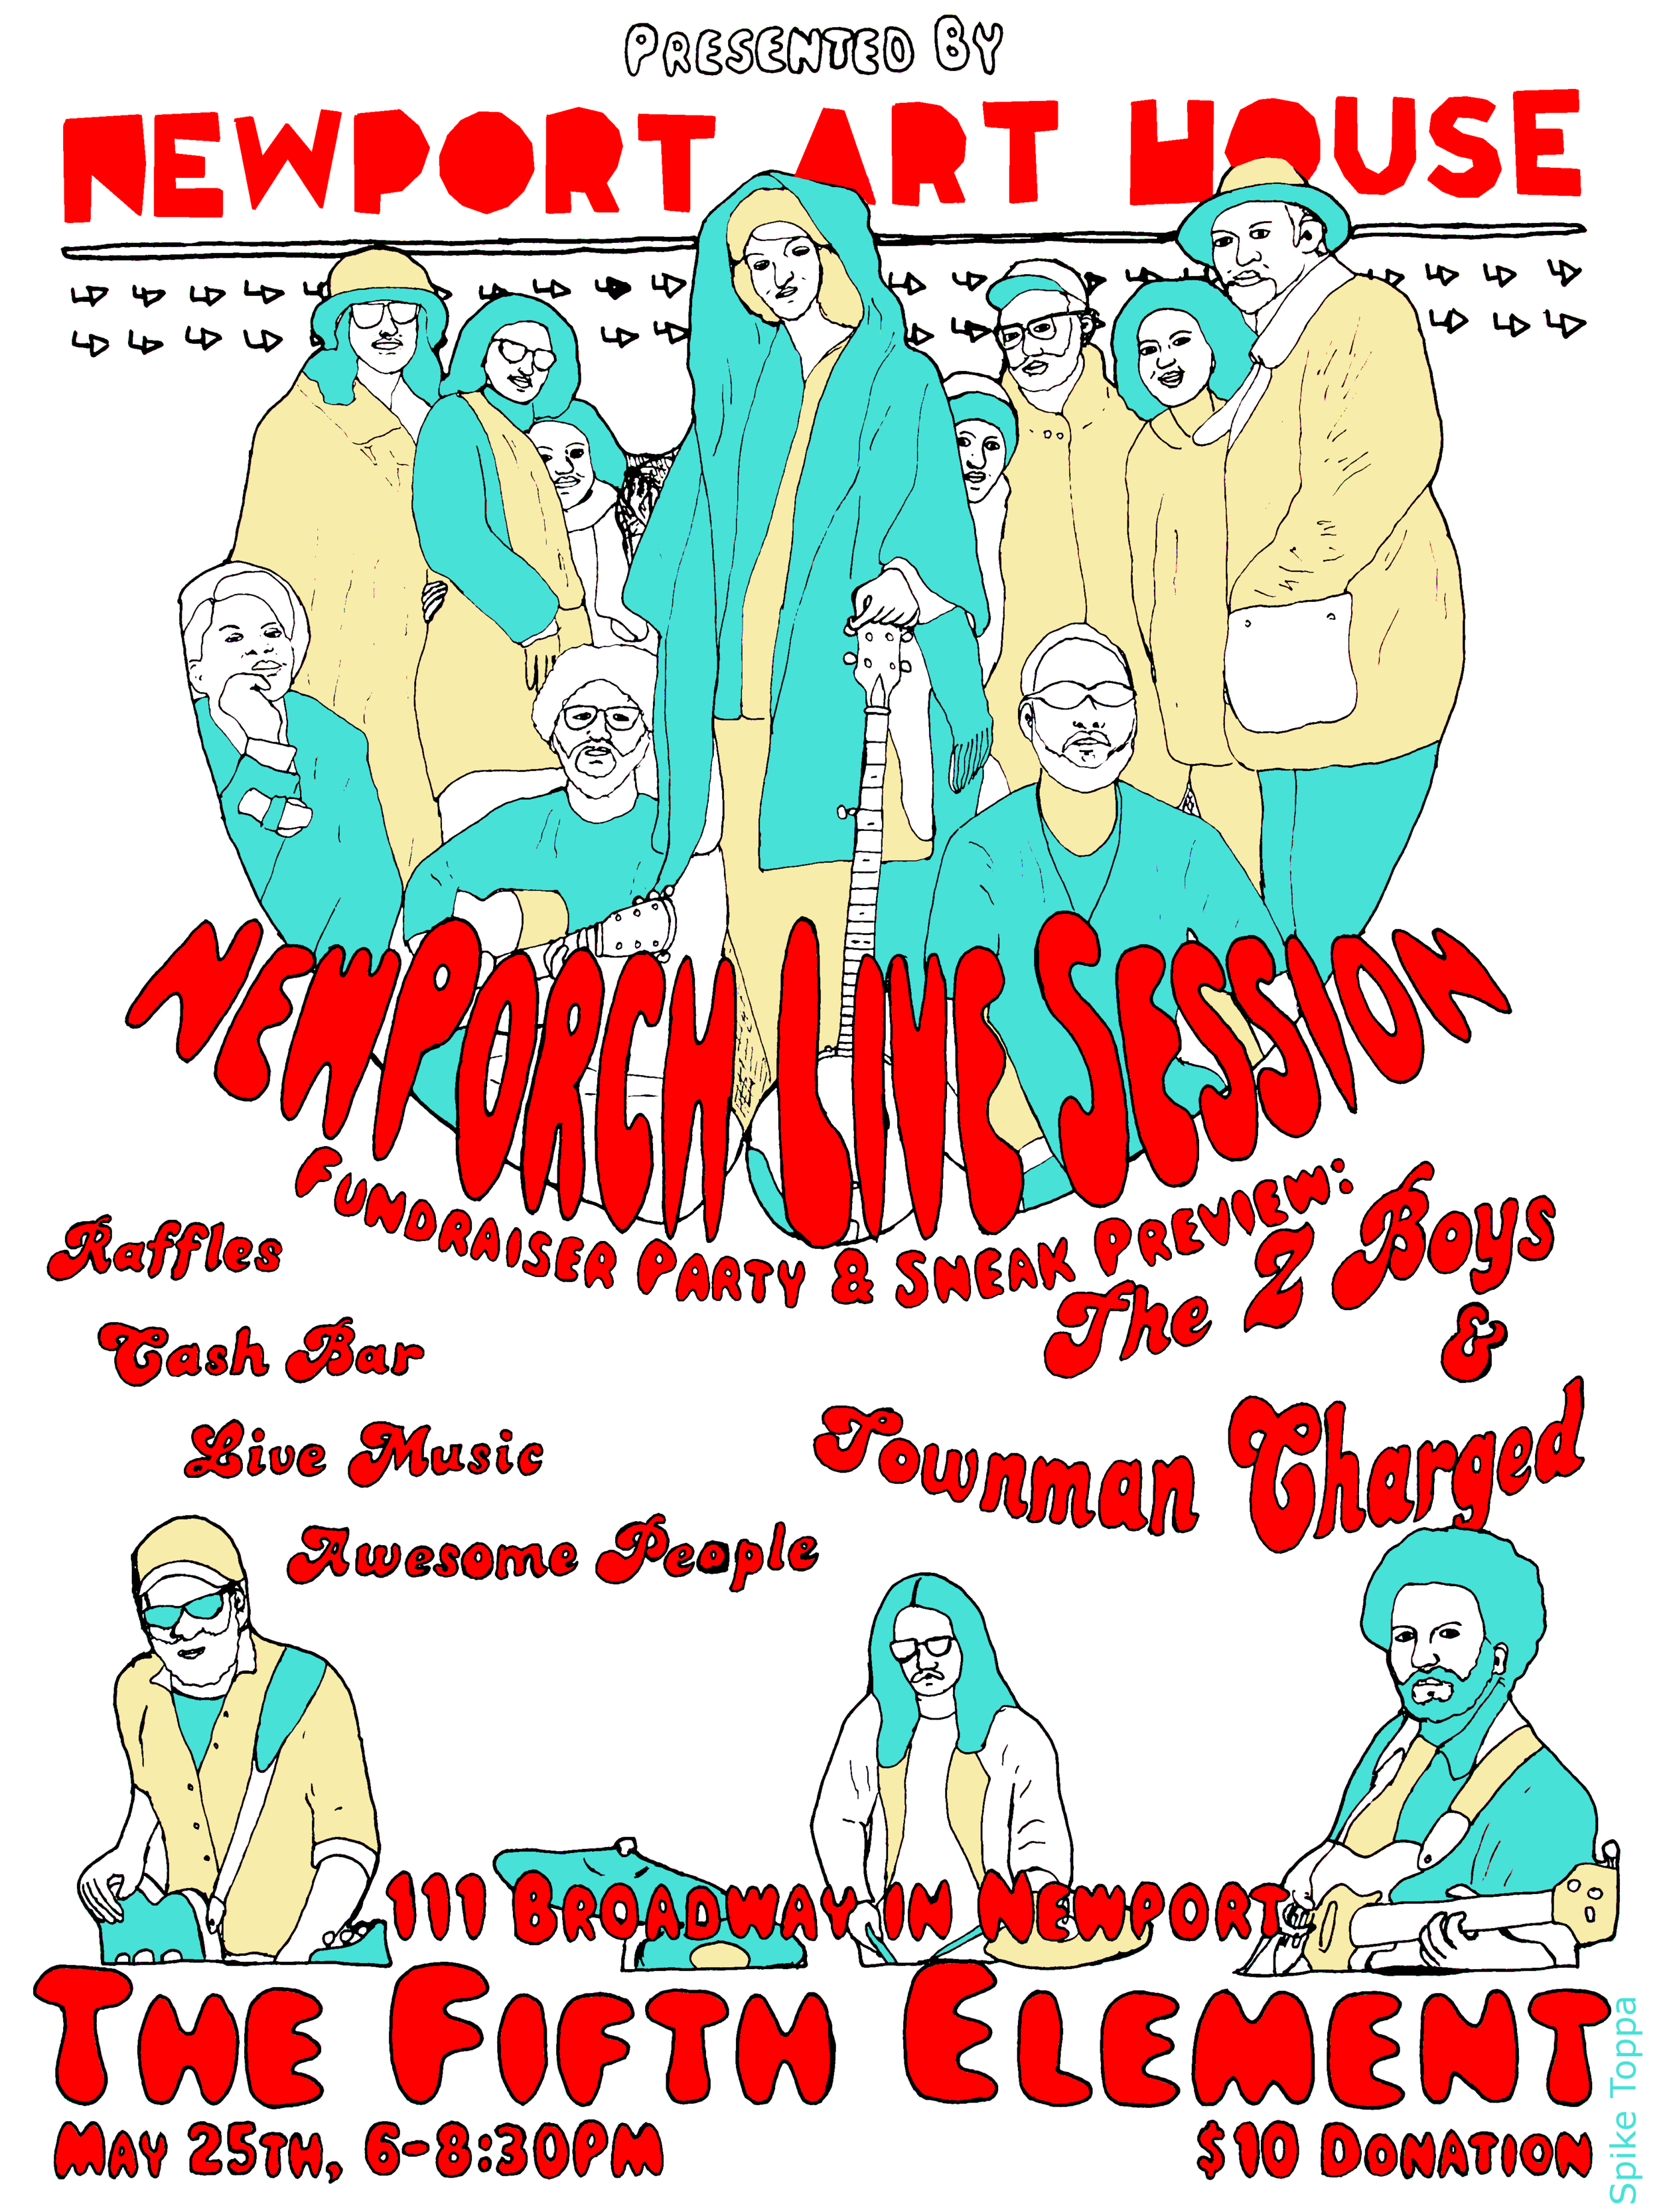 NewPorchLiveSessionPoster.png